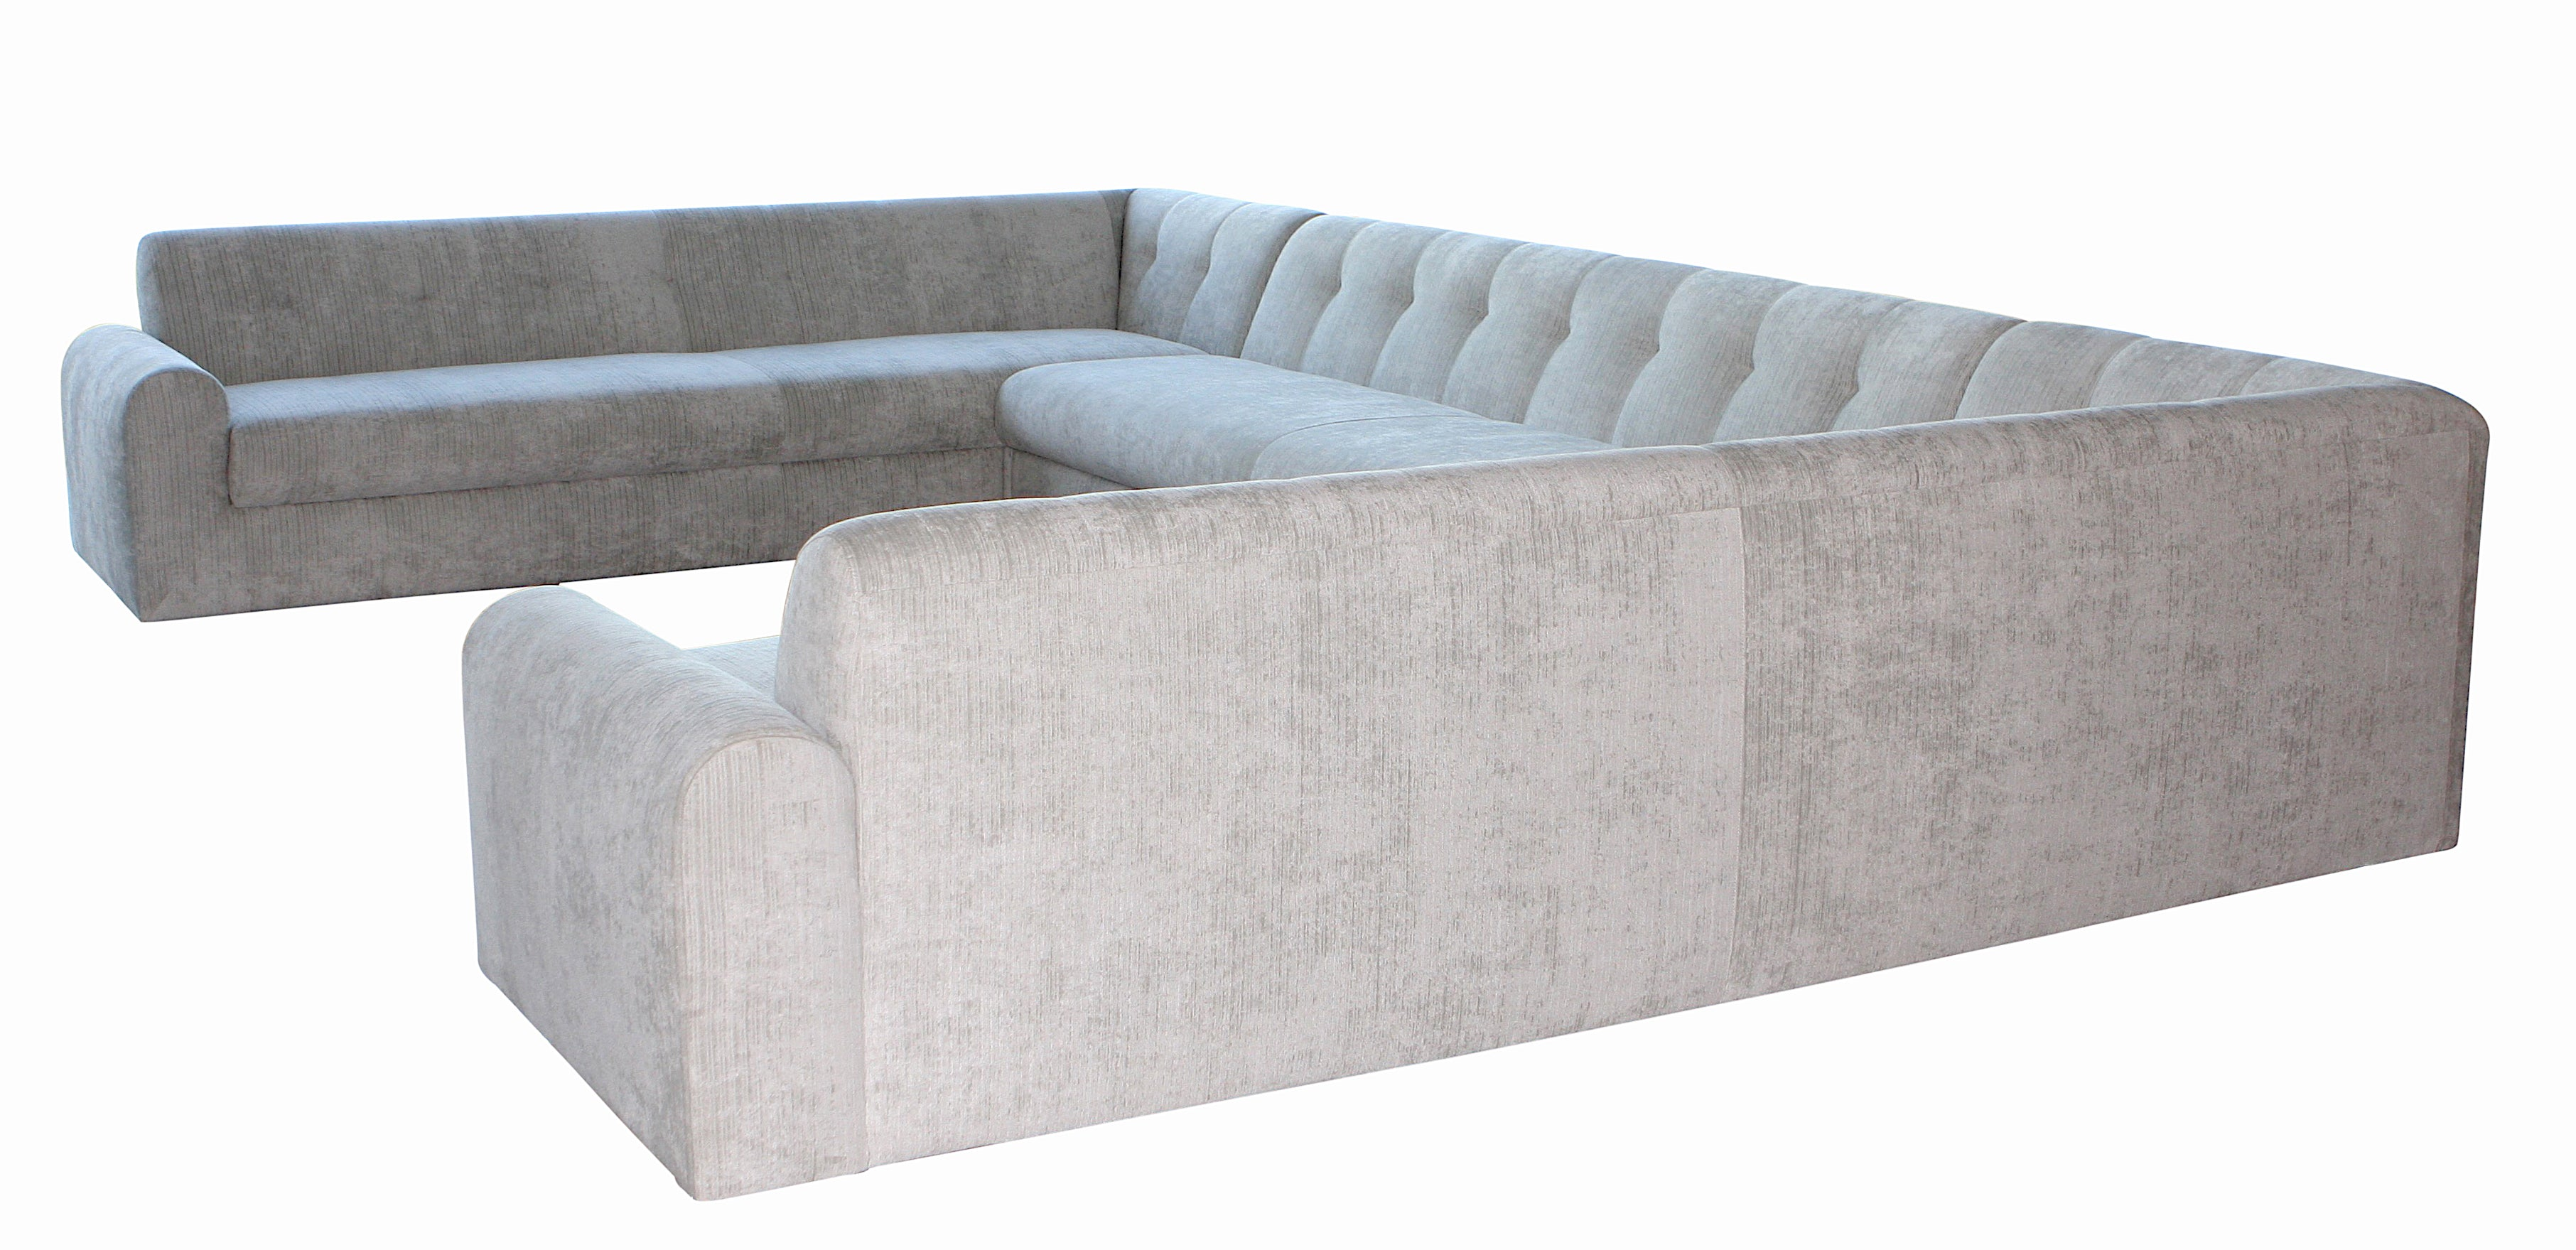 Outdoor Large U Shaped Sectional with Lucite Legs – Mortise ...